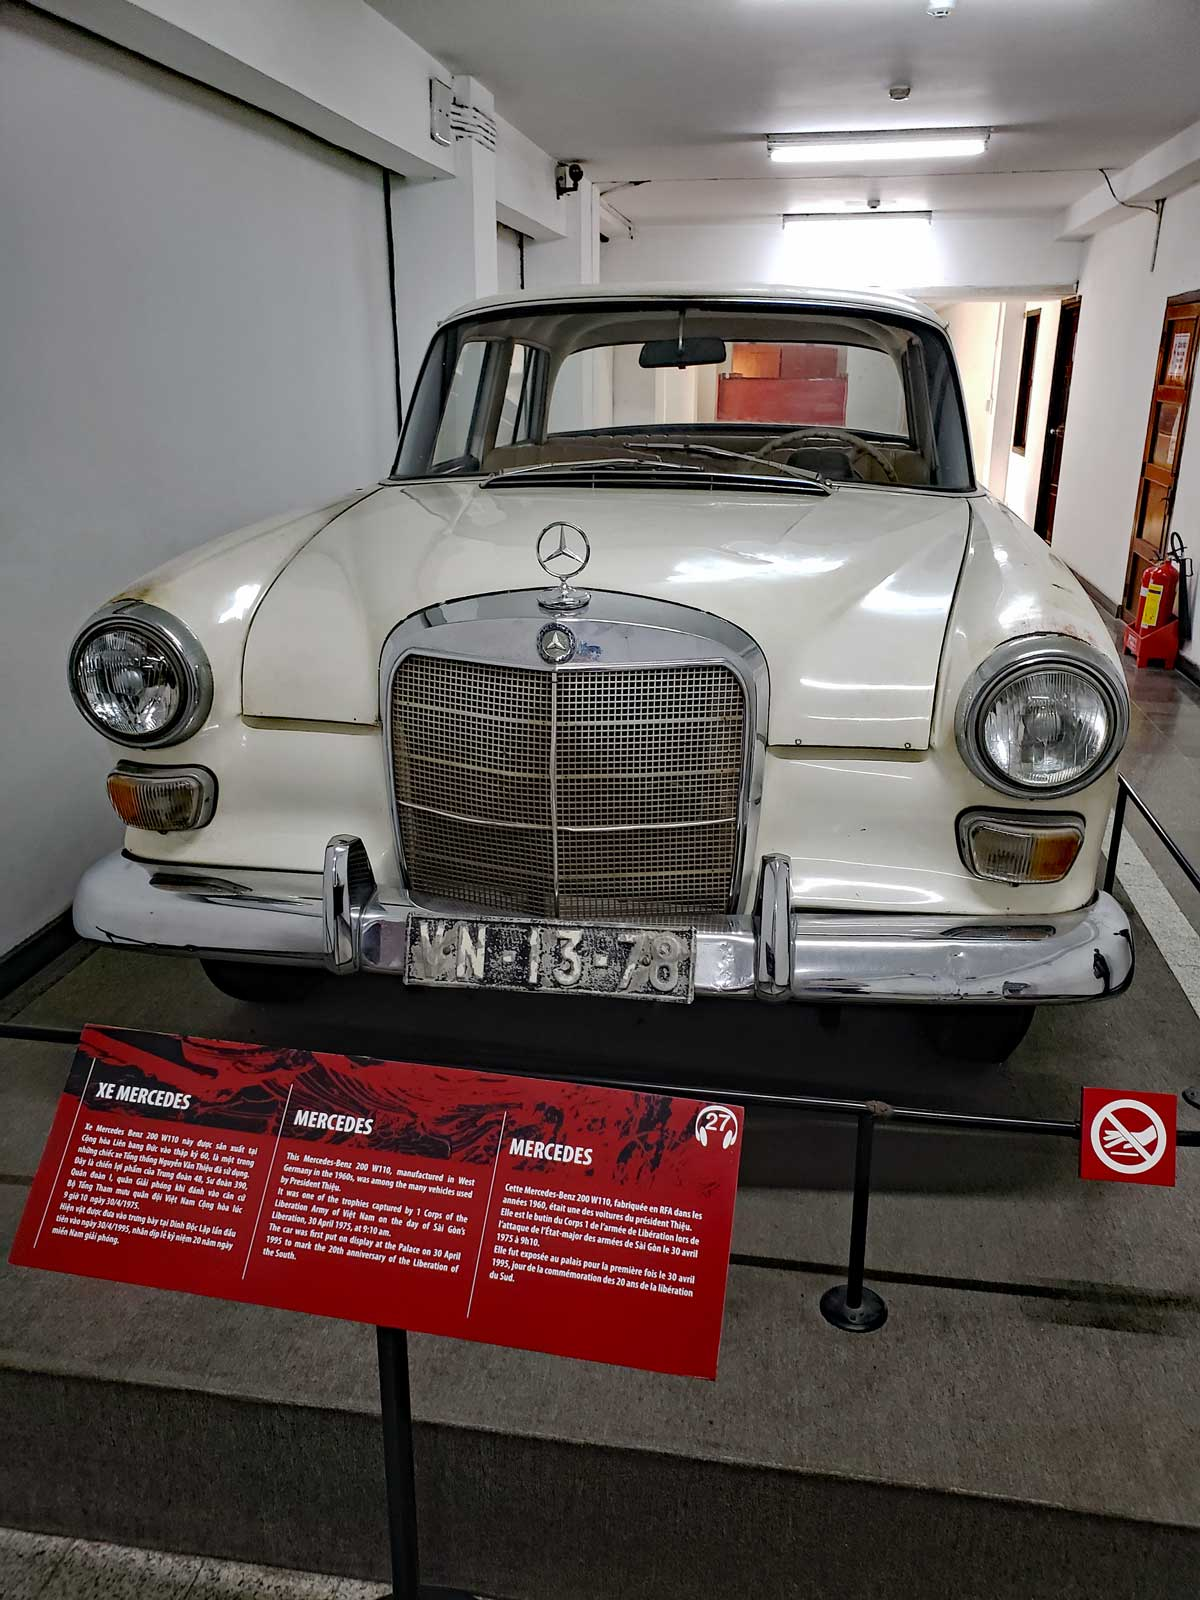 This Mercedes Benz 200 was also frequently used by the South Vietnamese President.